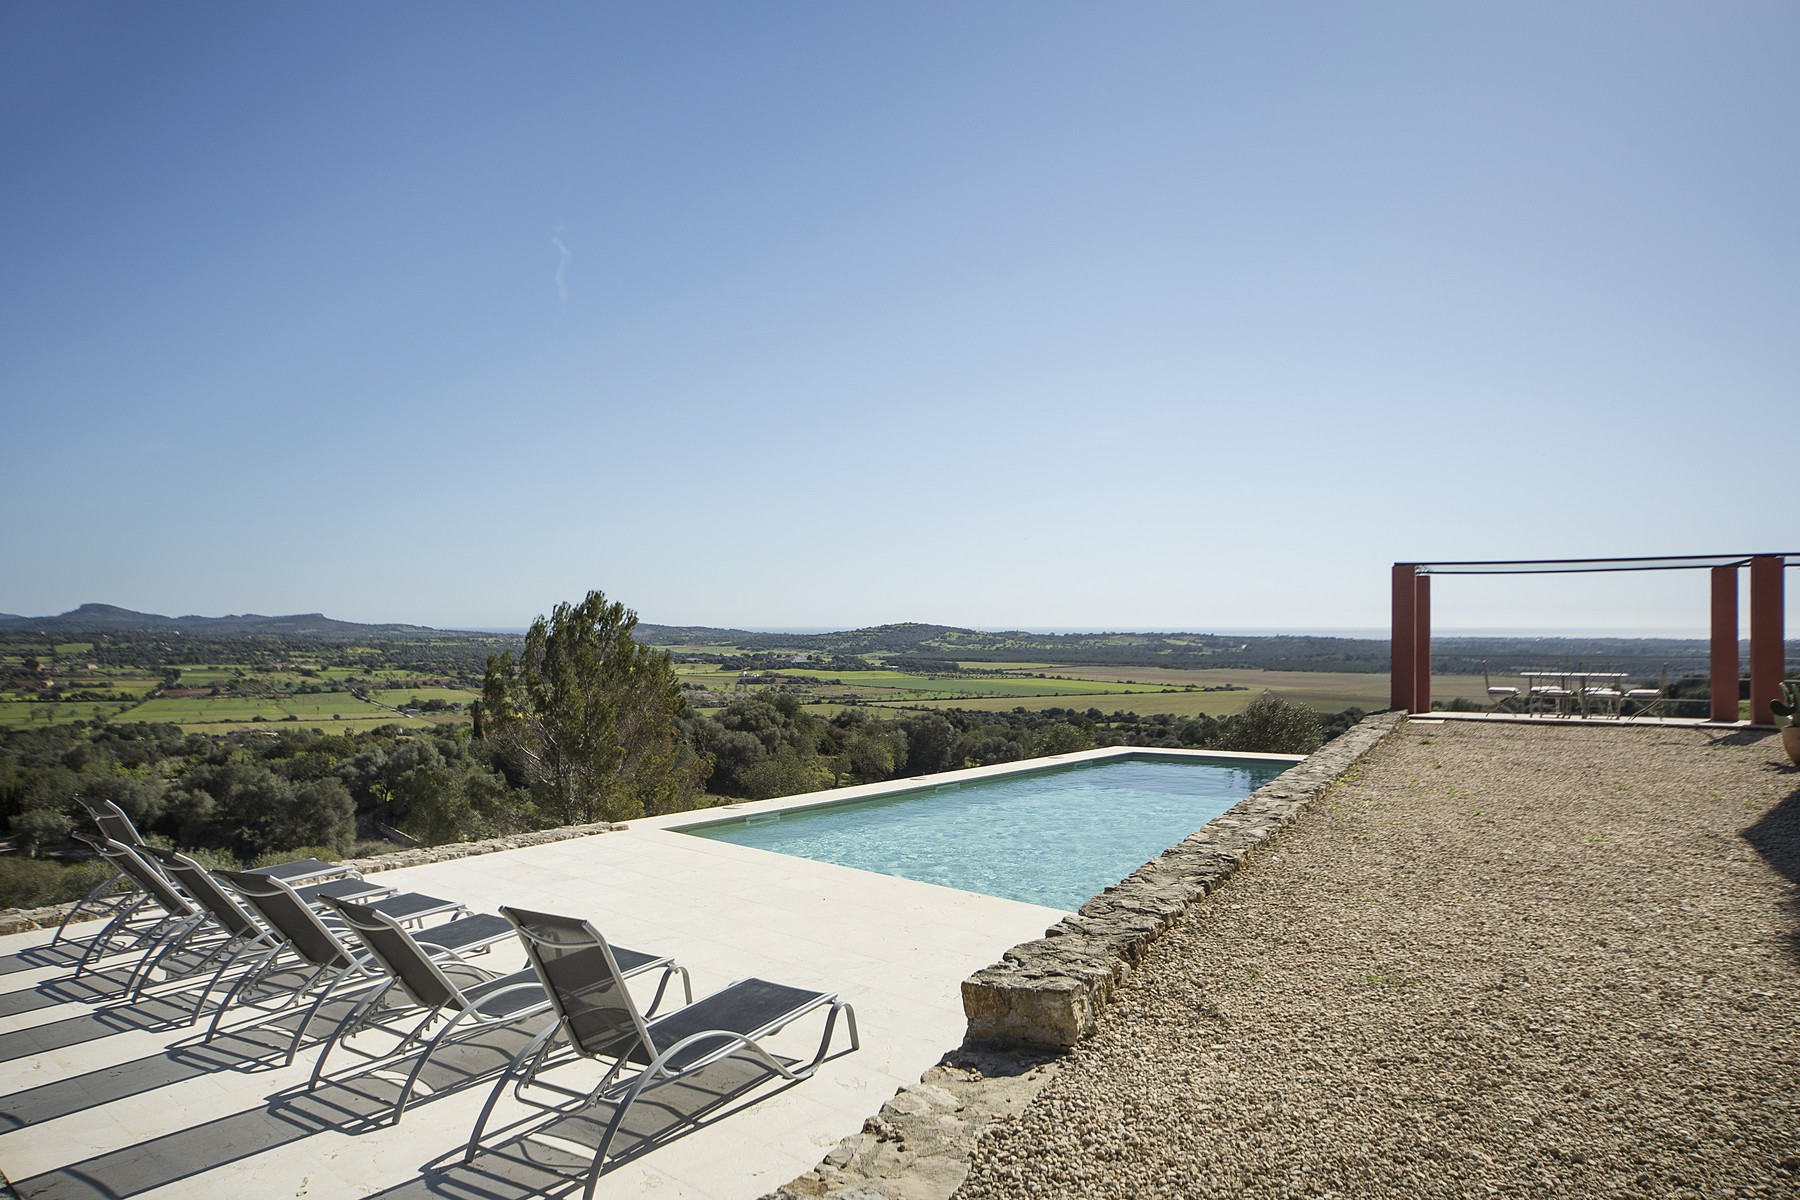 Single Family Home for Sale at Newly built Finca with nice views near the coast Manacor, Balearic Islands, Spain